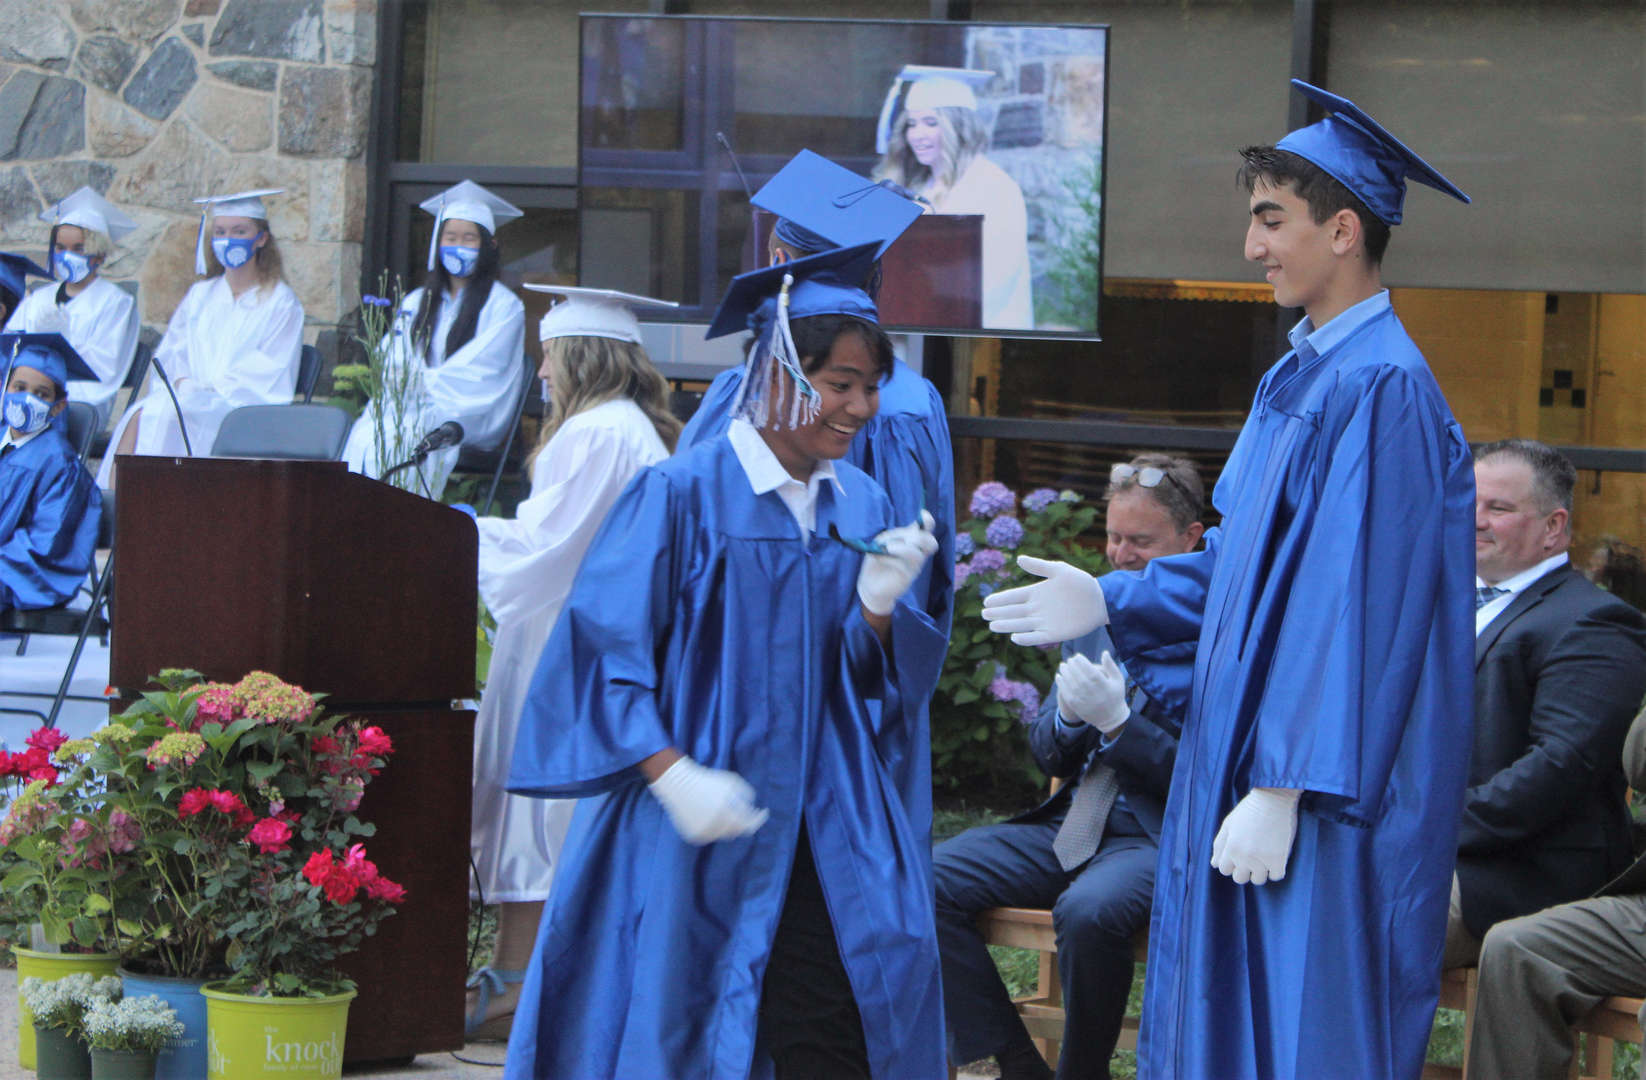 Student government speakers addressed classmates, staff and families.